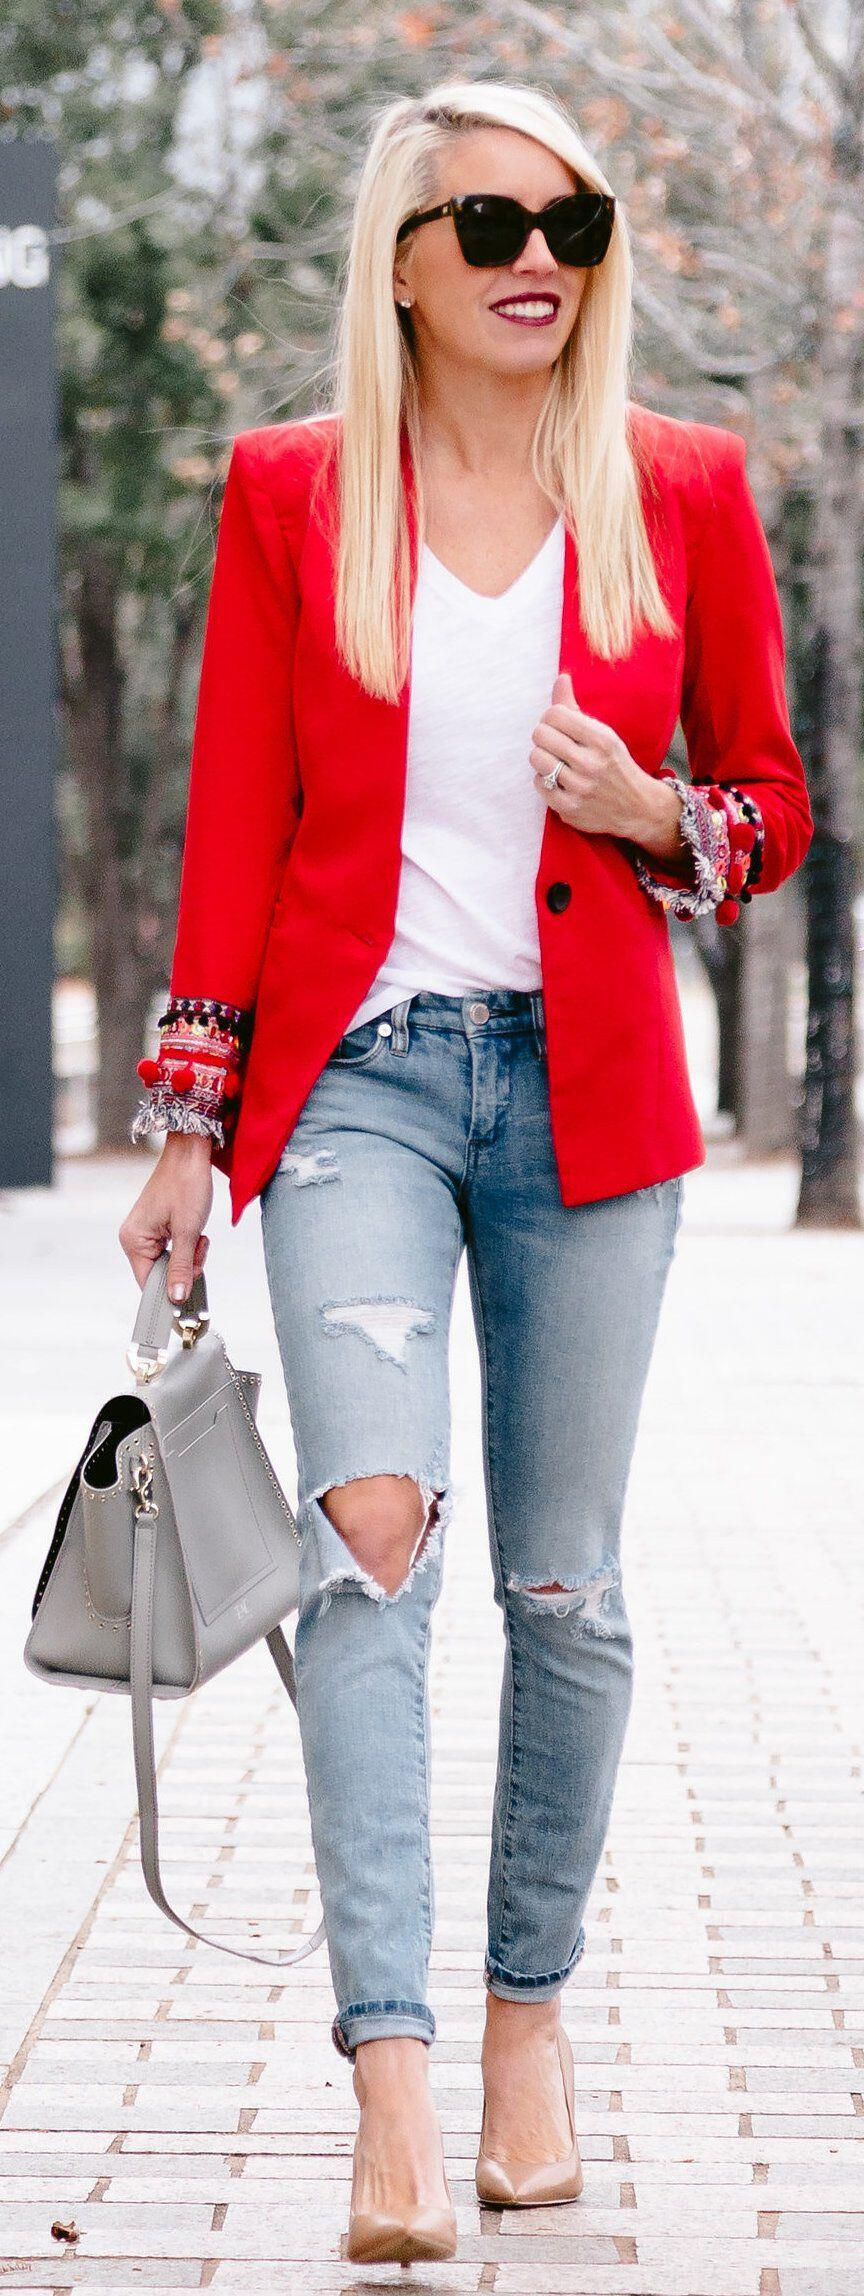 11 inspiring ways to wear your red blazer right now - stylishwomenoutfits.com